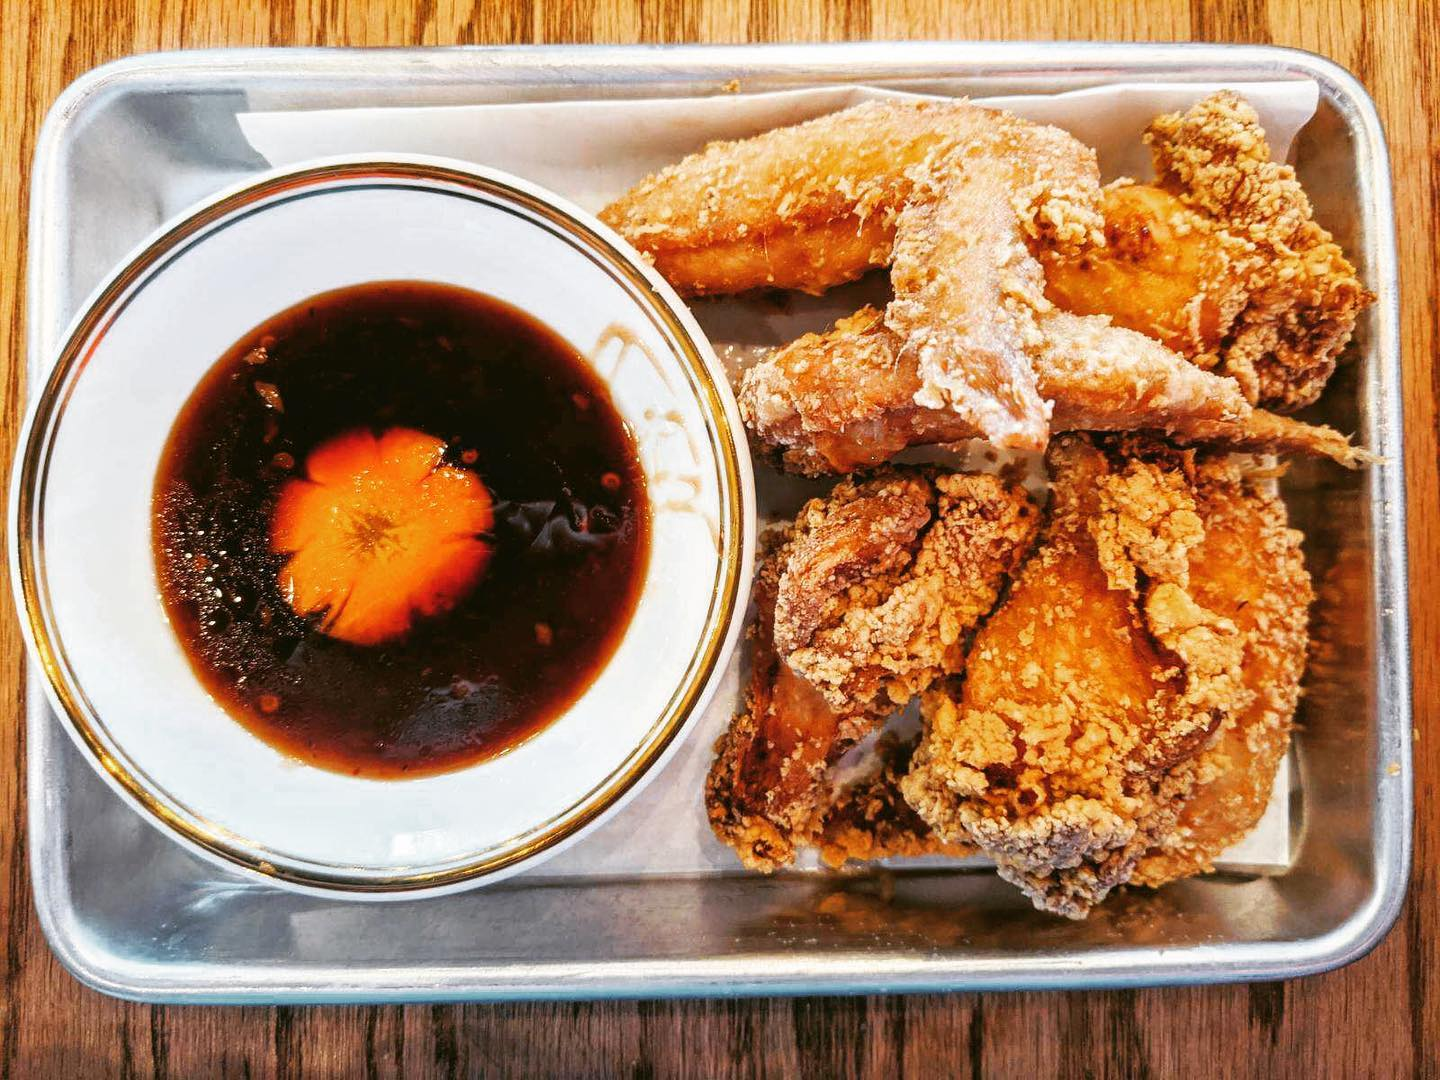 A metal tray with a pile of lightly-battered chicken wings on the right and a deep, rich-looking dipping sauce on the left